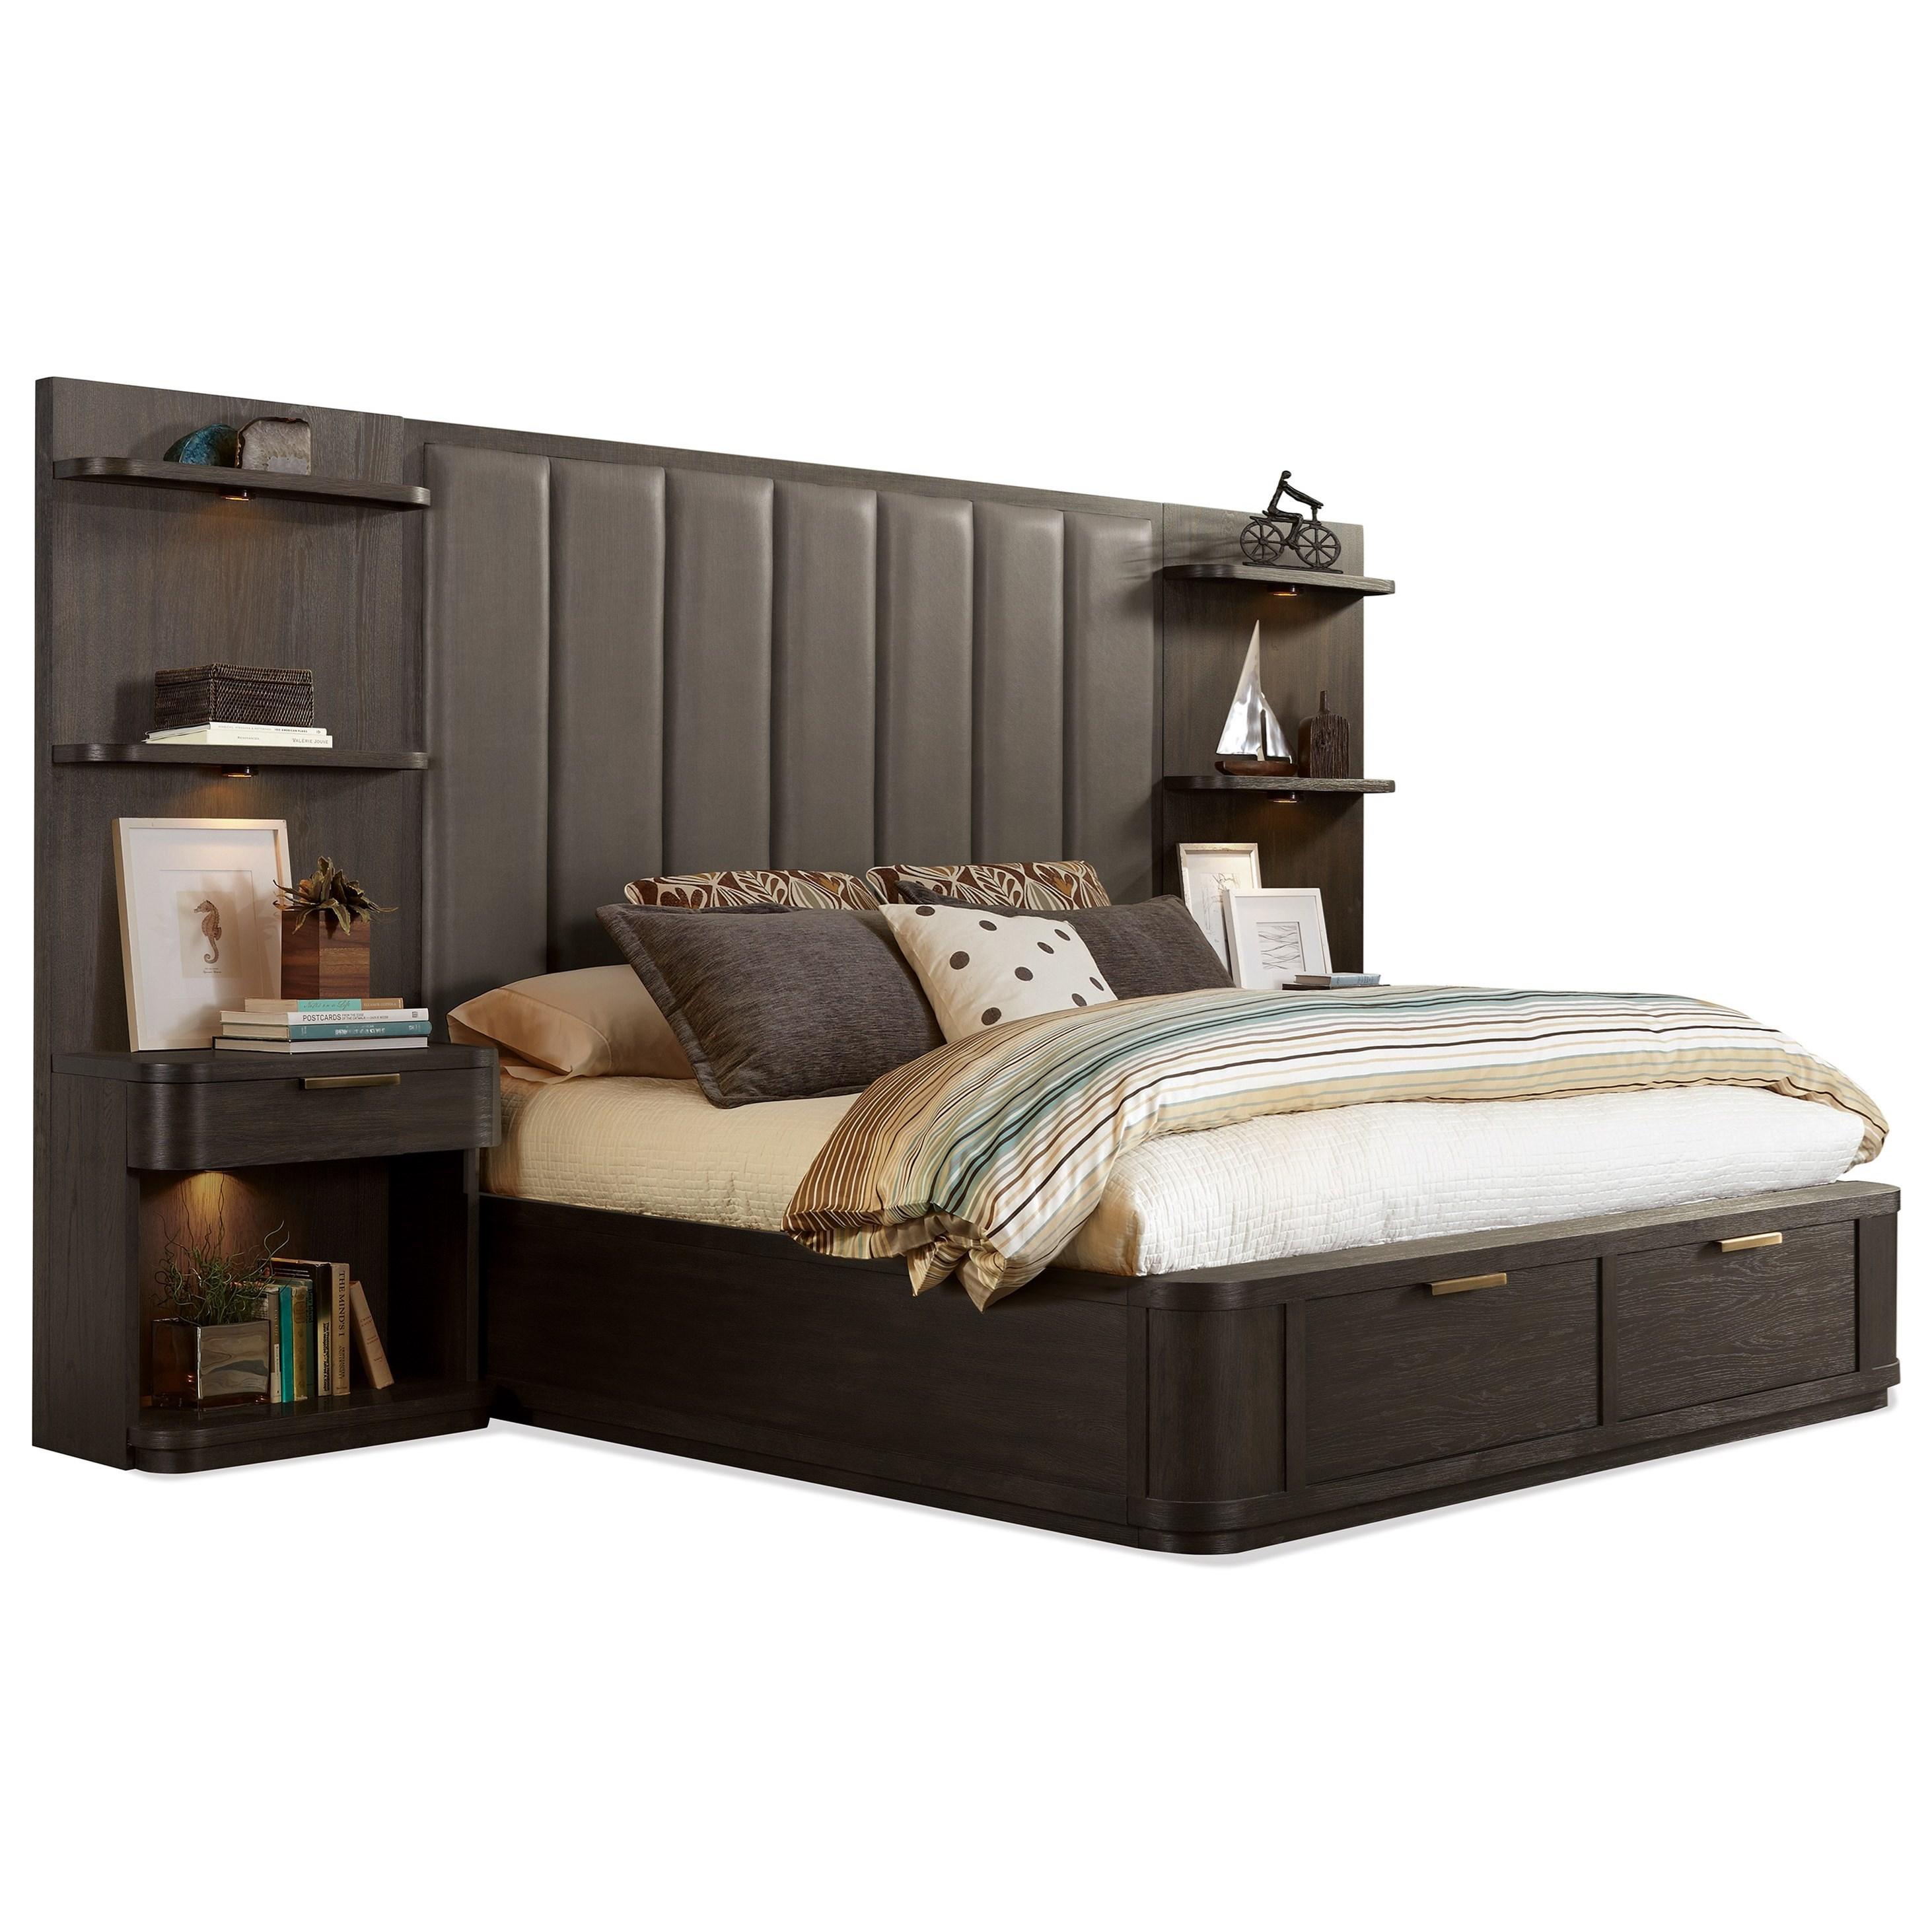 King Tall Upholstered Storage Bed